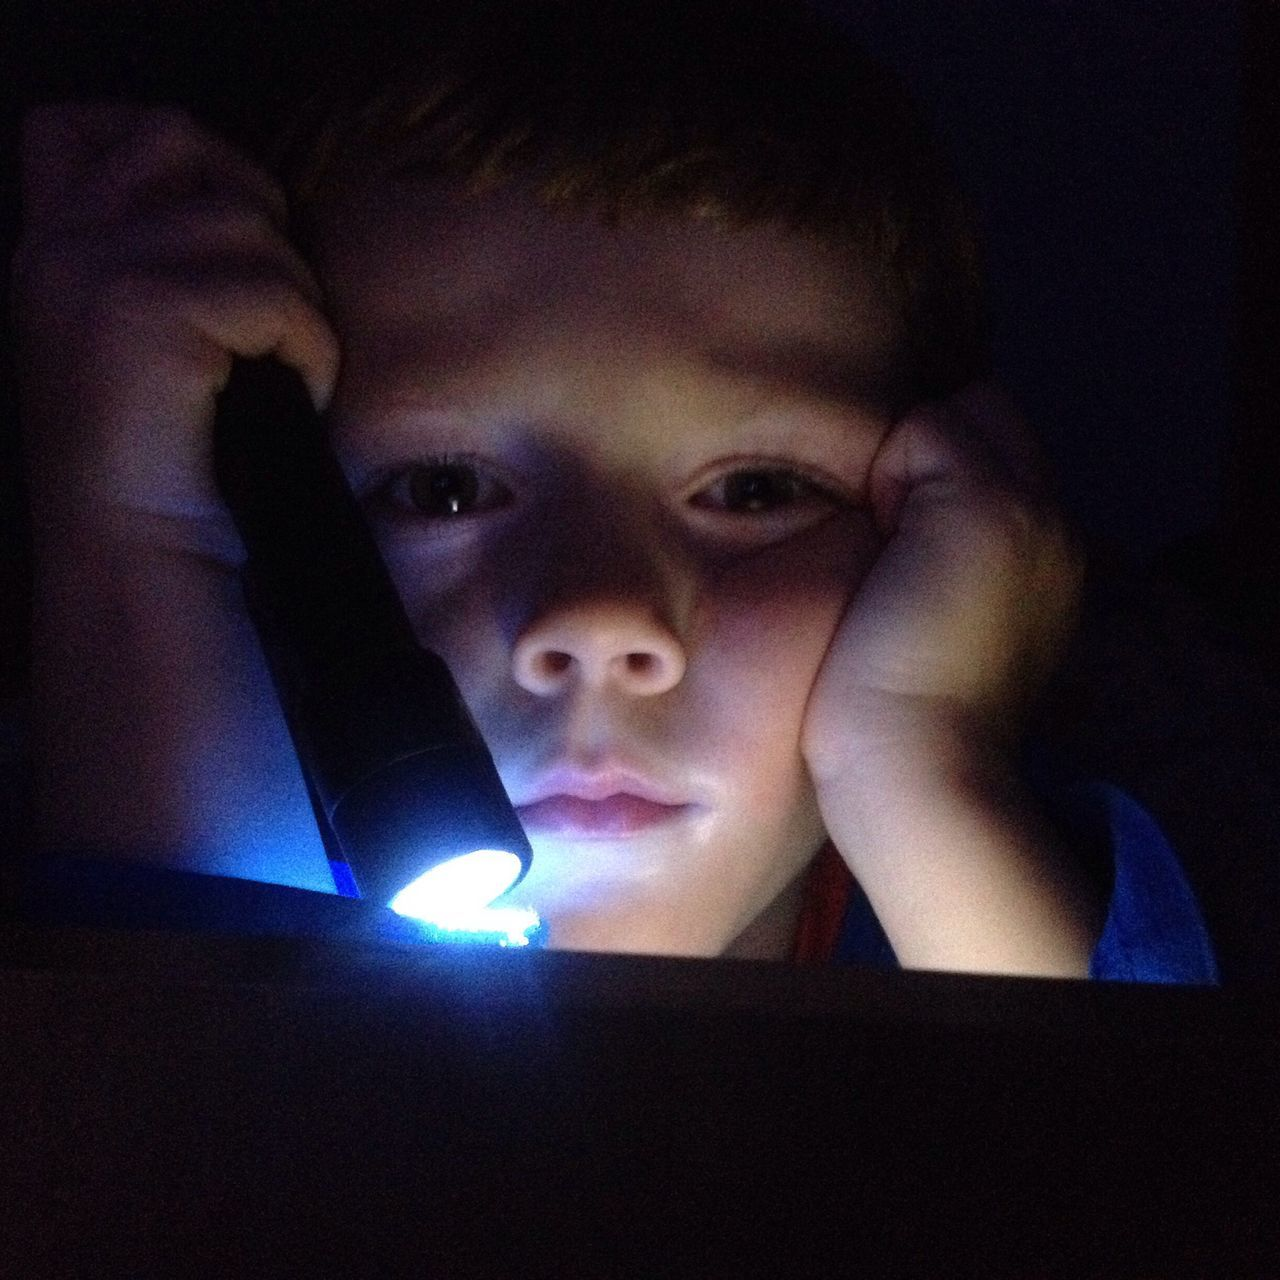 By torch light Real People Headshot One Person Child Childhood Torch Torchlight Reading Looking At Camera Illuminated Portrait Boy